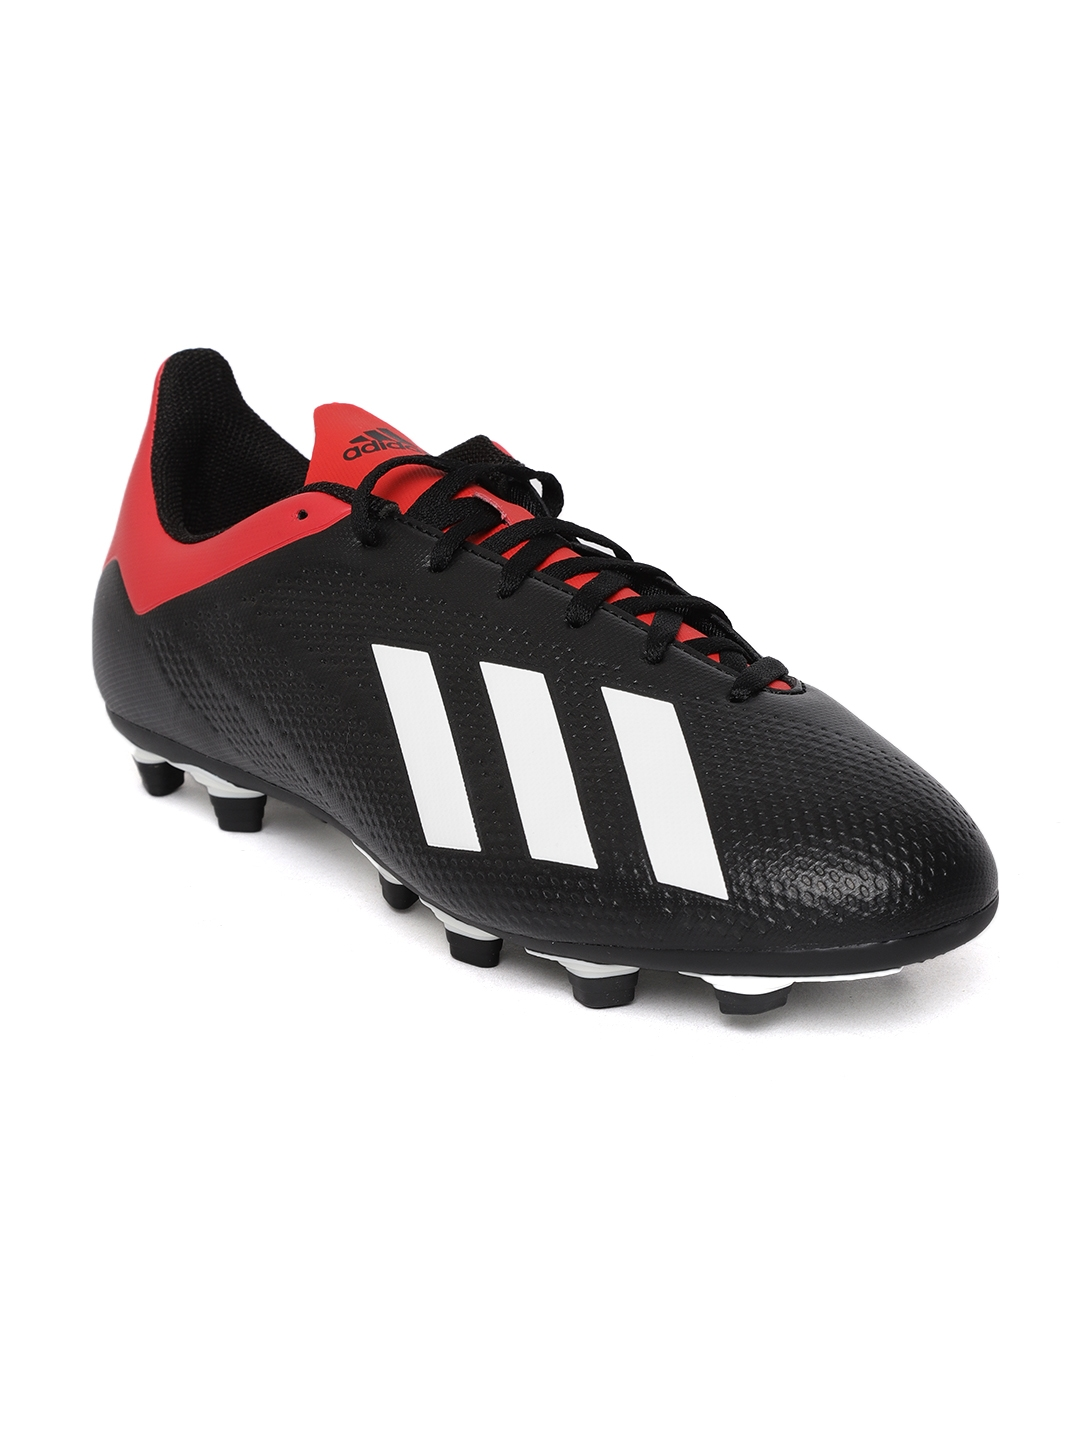 ADIDAS Men Black X Tango 18.4 Fixed Ground Football Shoes